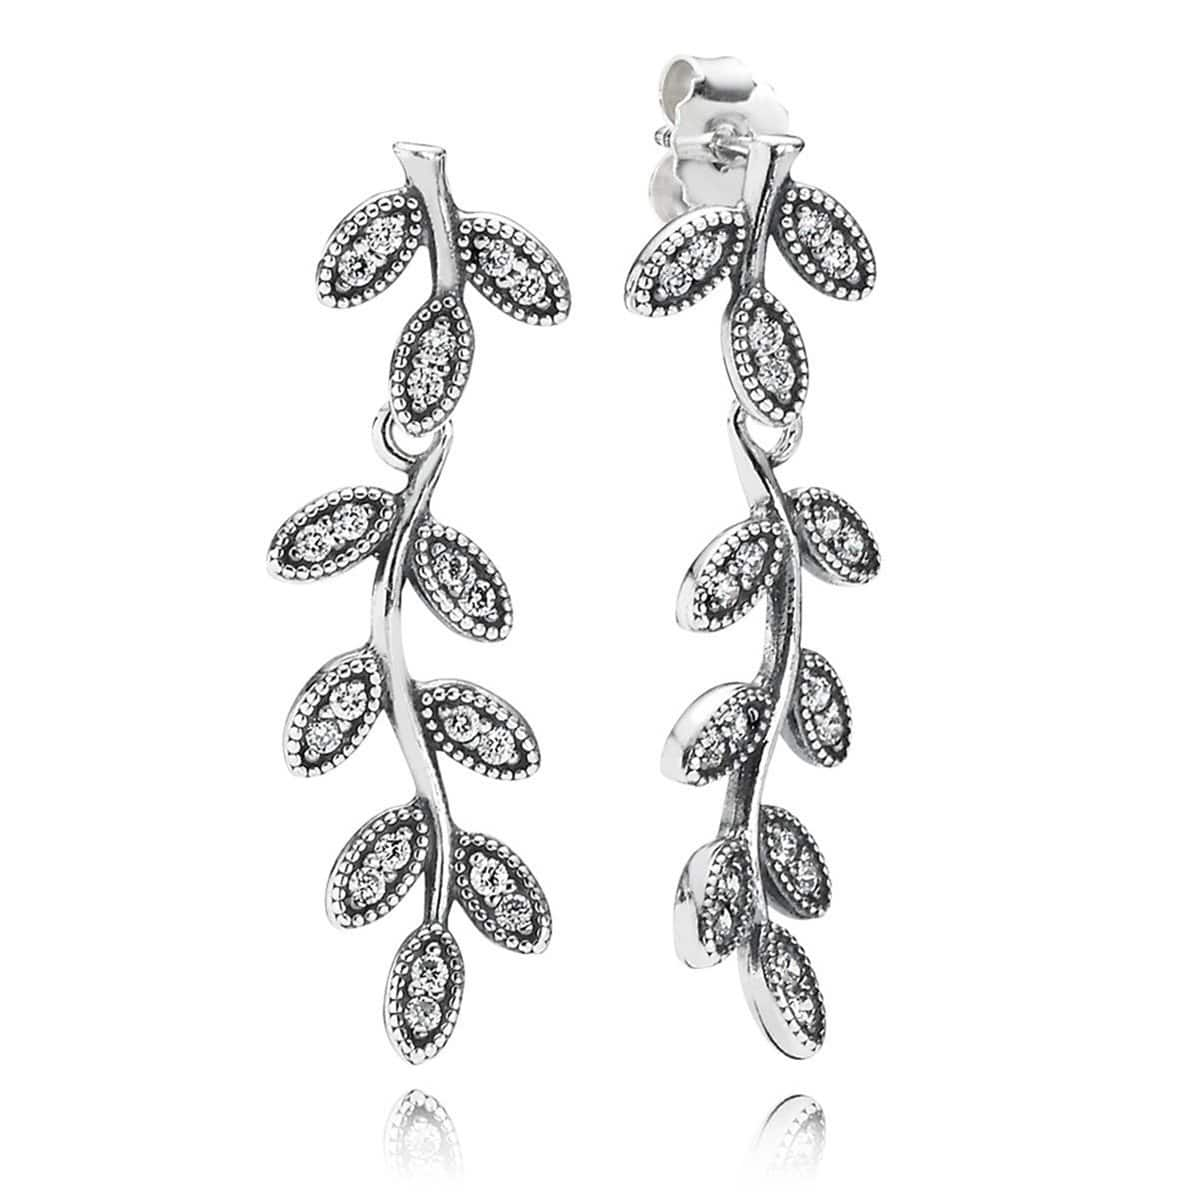 Charm Sparkling Leaves Clear Cubic Zirconia Earrings - 290565CZ-Pandora-Renee Taylor Gallery